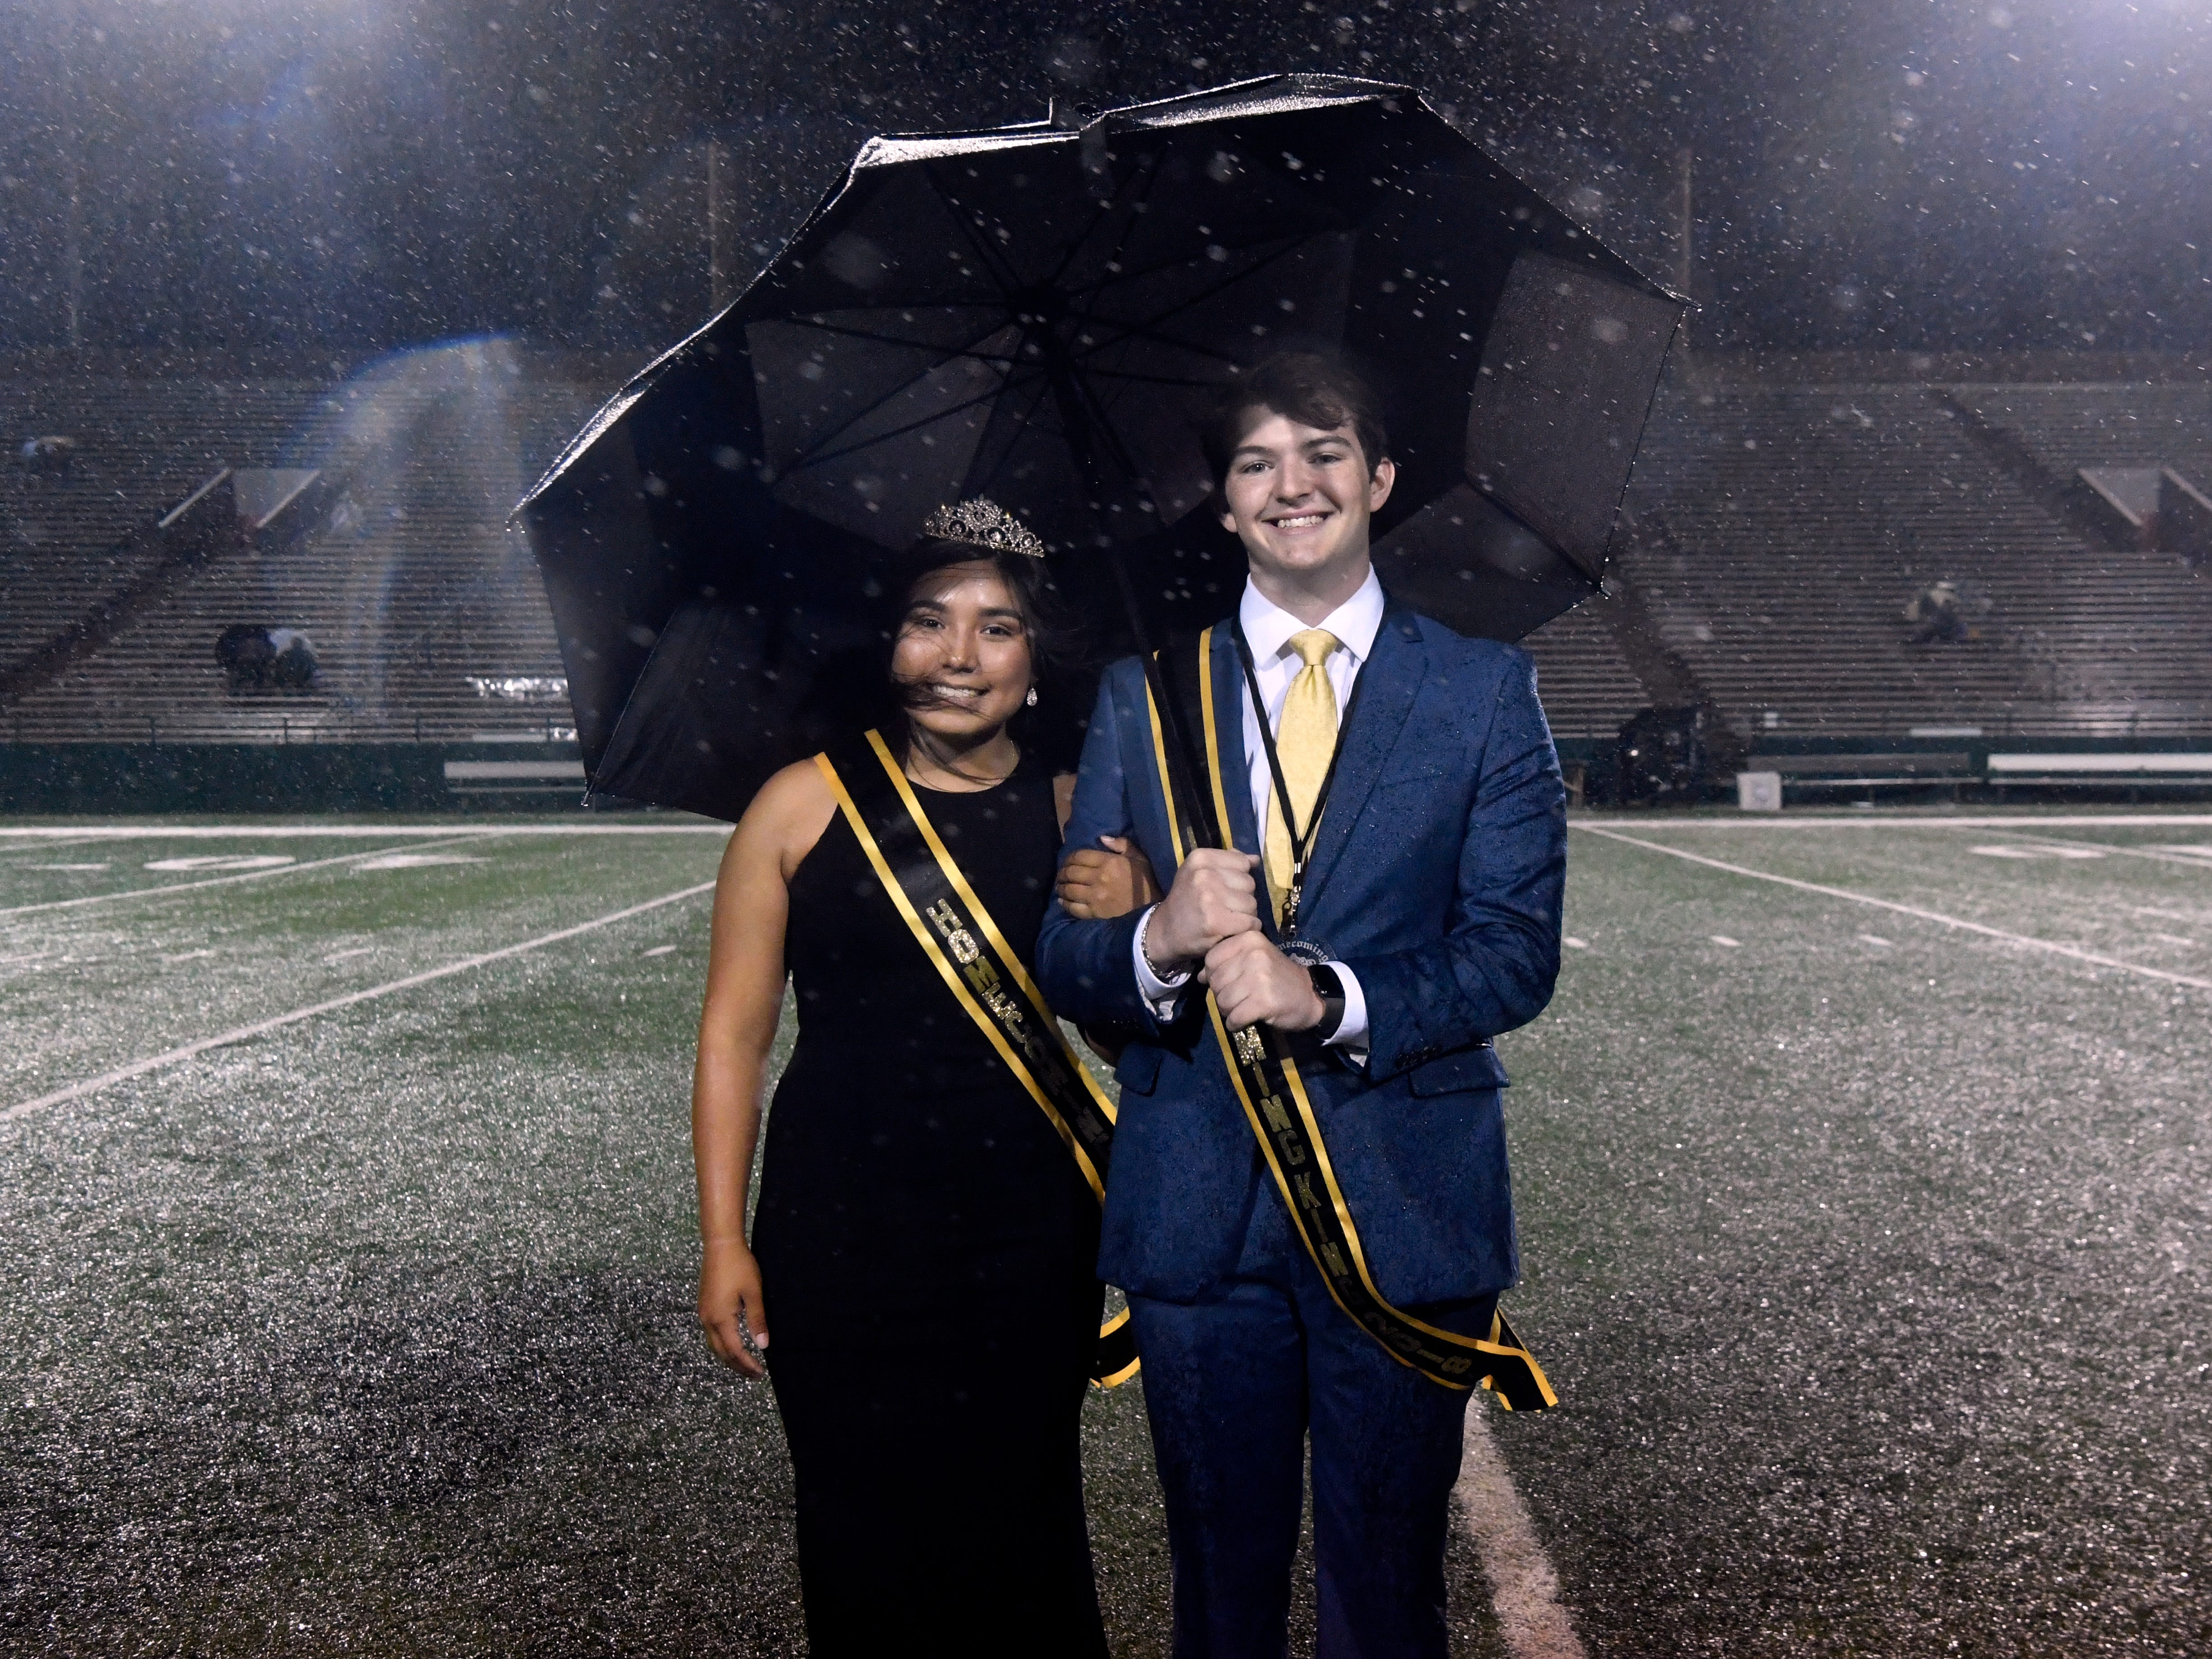 Gabriella Hernandez and Dakota Drennan were named the 2018 Abilene High School homecoming queen and king during a rainy half-time ceremony Friday Sept. 21, 2018.